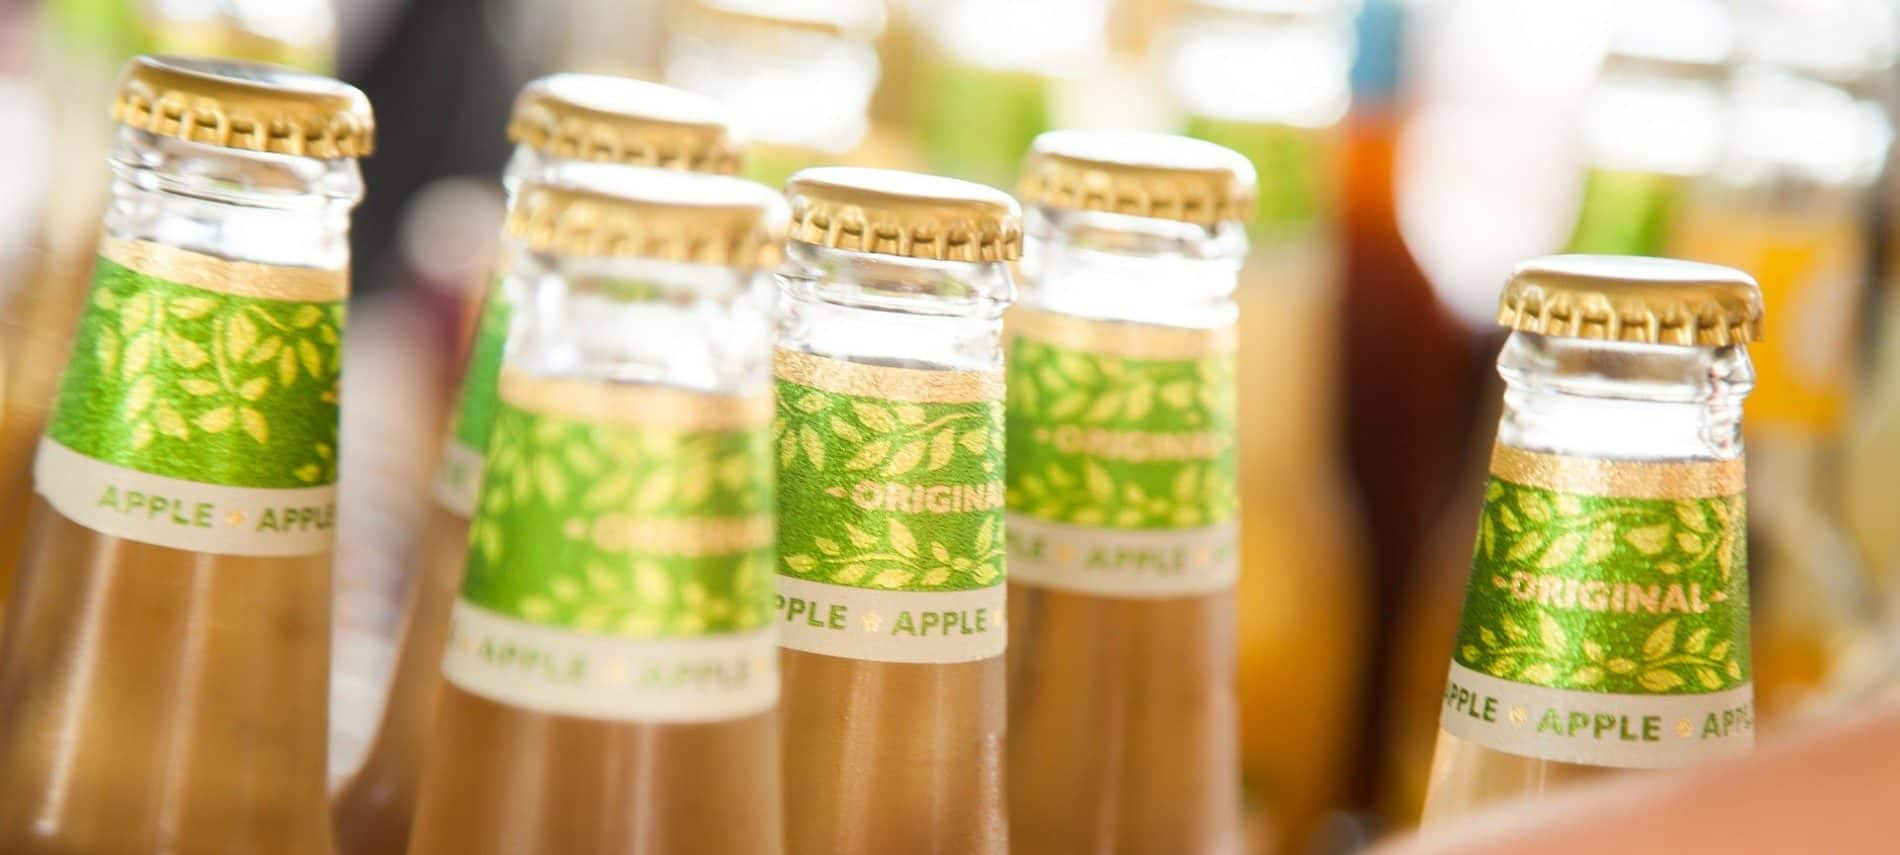 A grouping of several bottles of light apple cider with shiny green lables